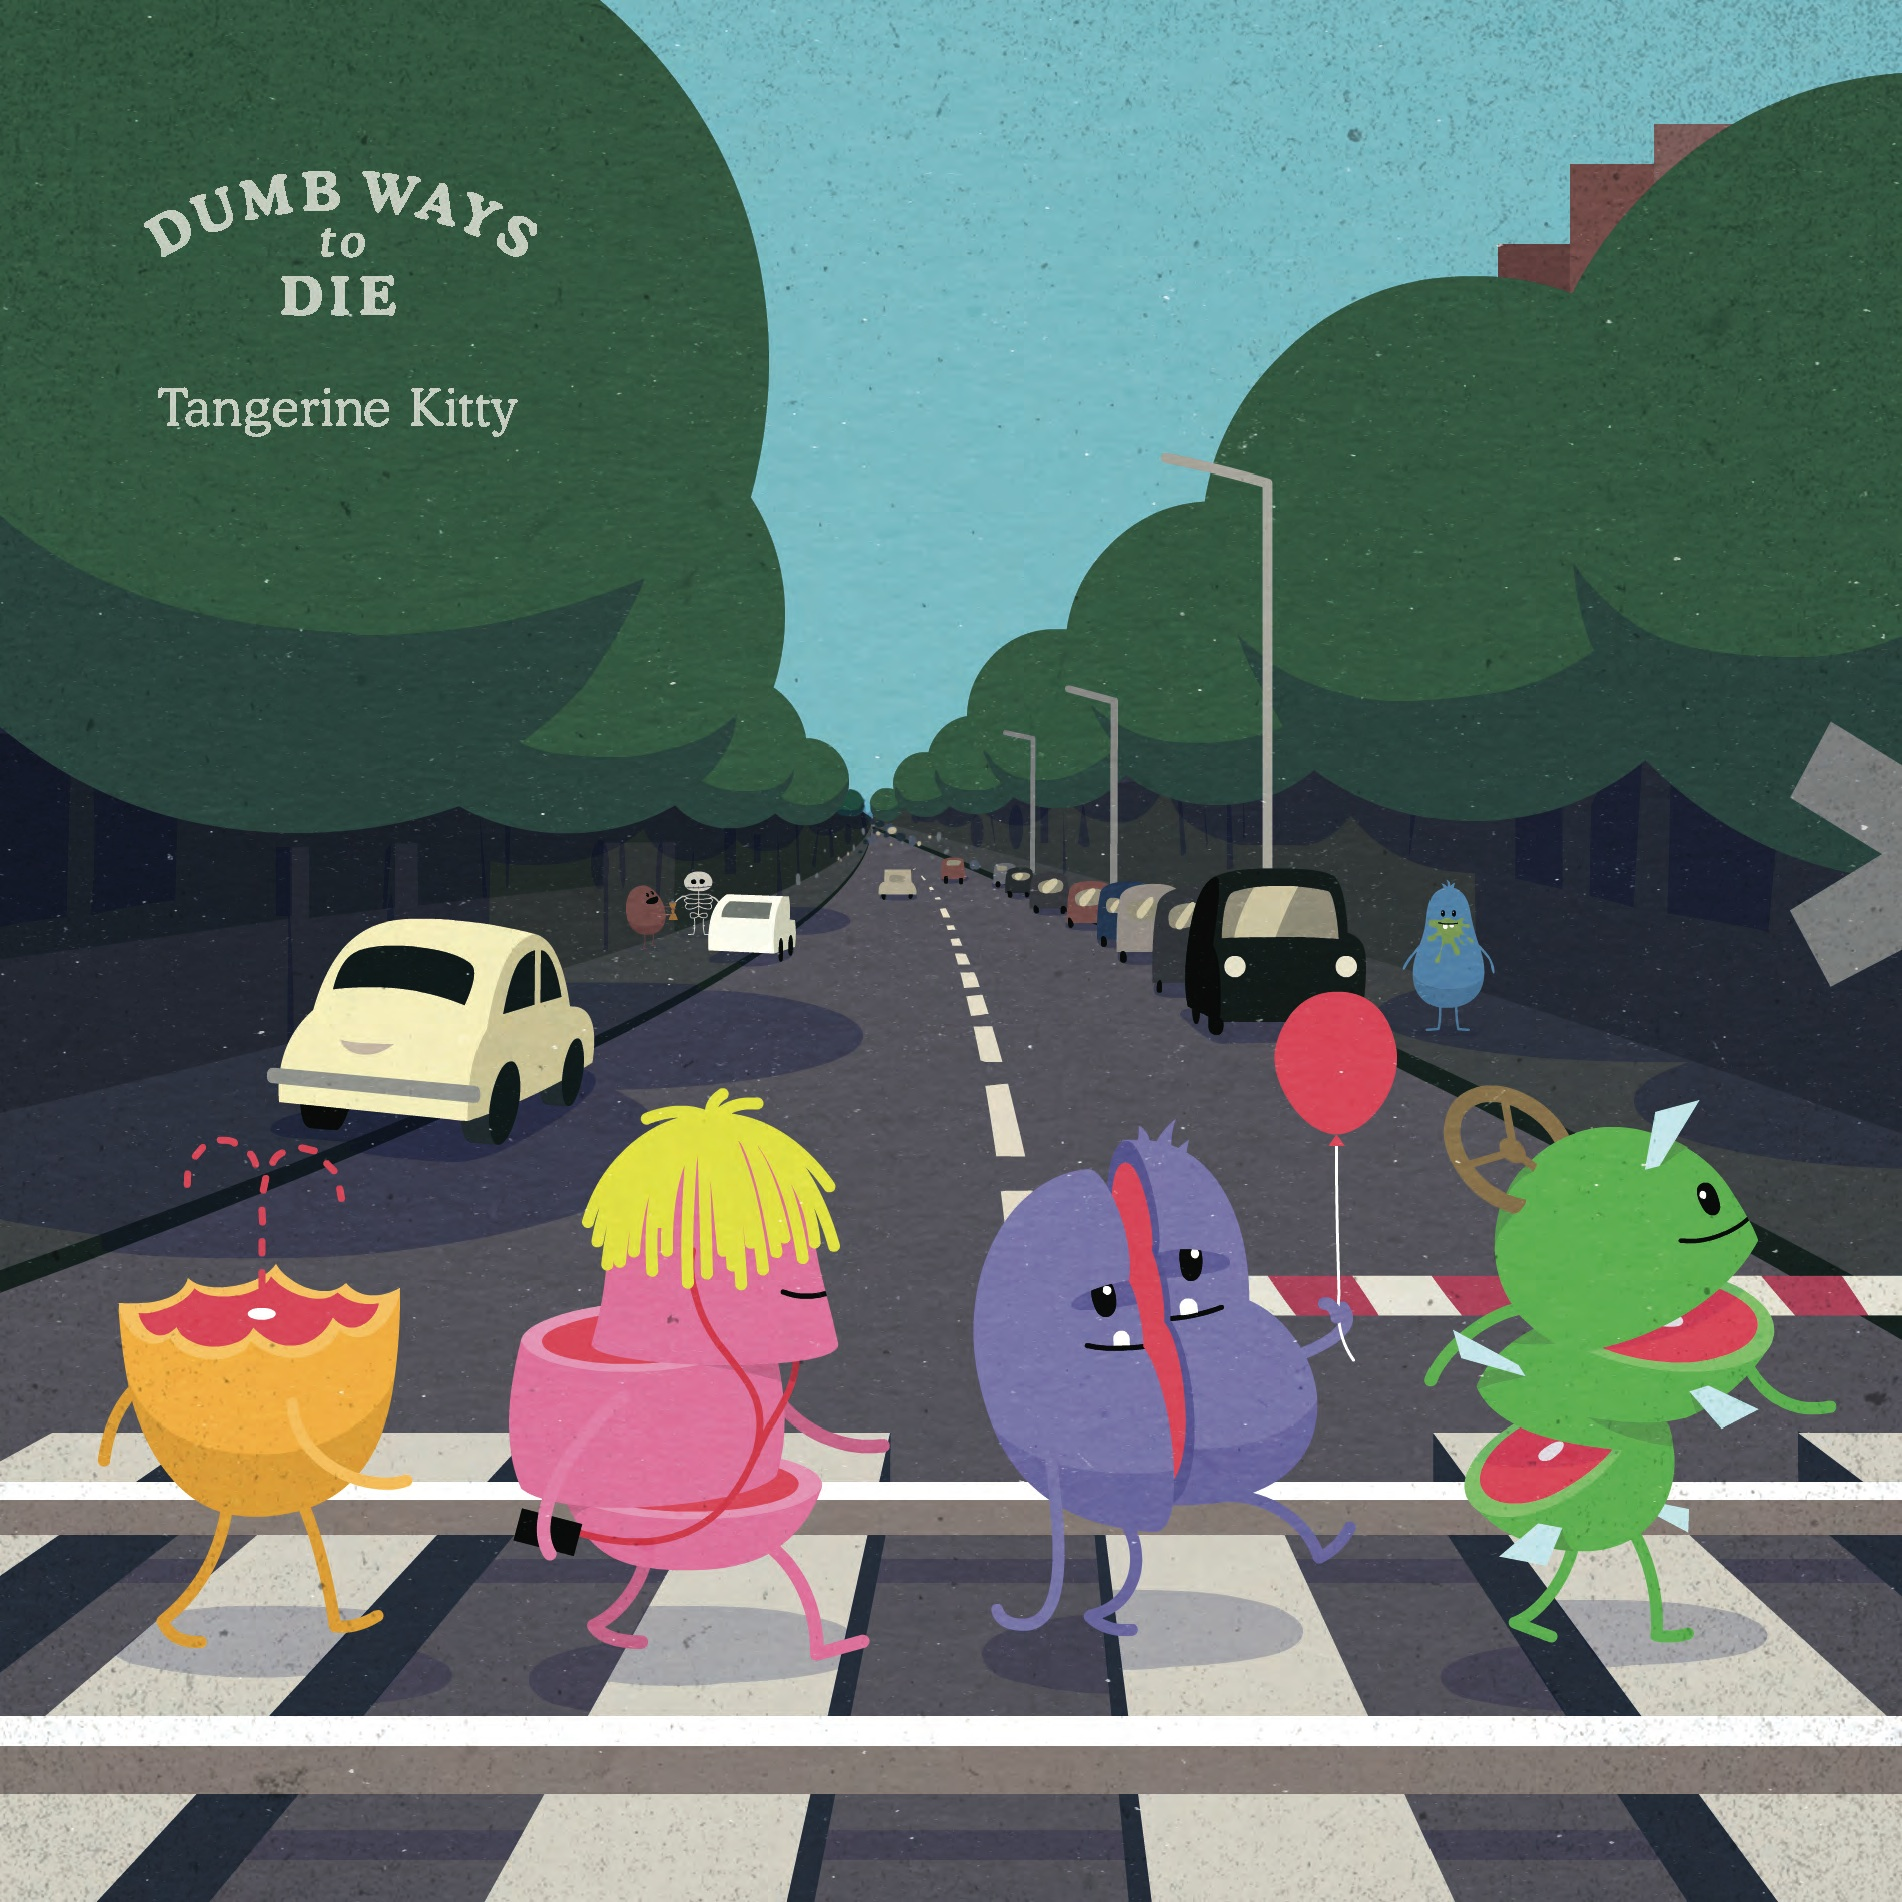 dumb-ways-to-die-abbey-road-cover